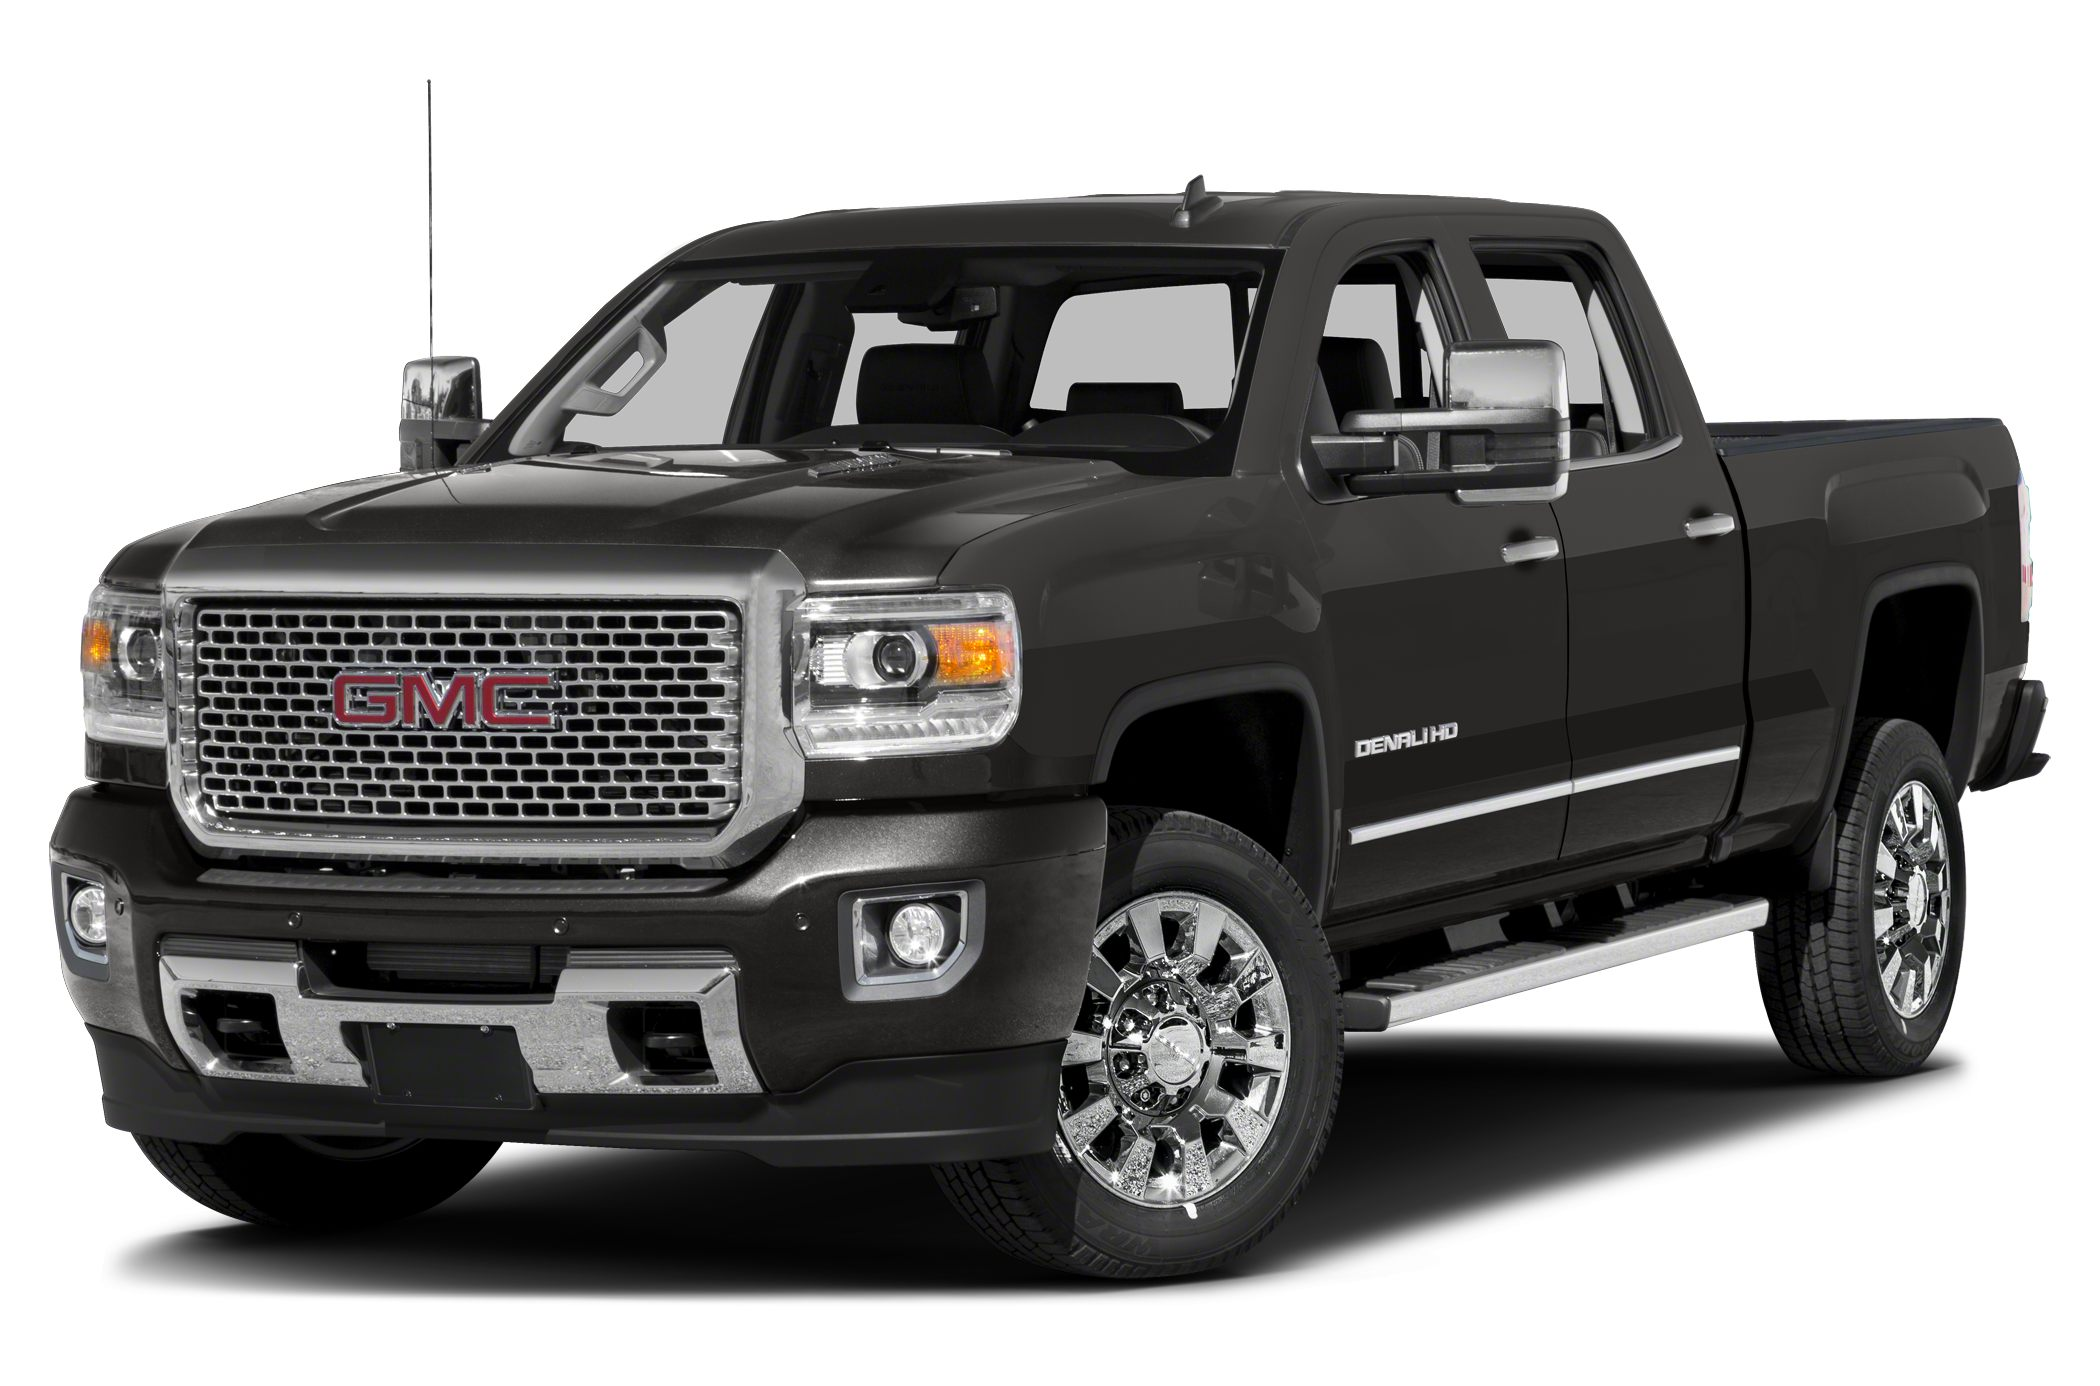 2017 GMC Sierra 2500HD Denali 4x4 Crew Cab 6.6 ft. box 153.7 in. WB Specs  and Prices.